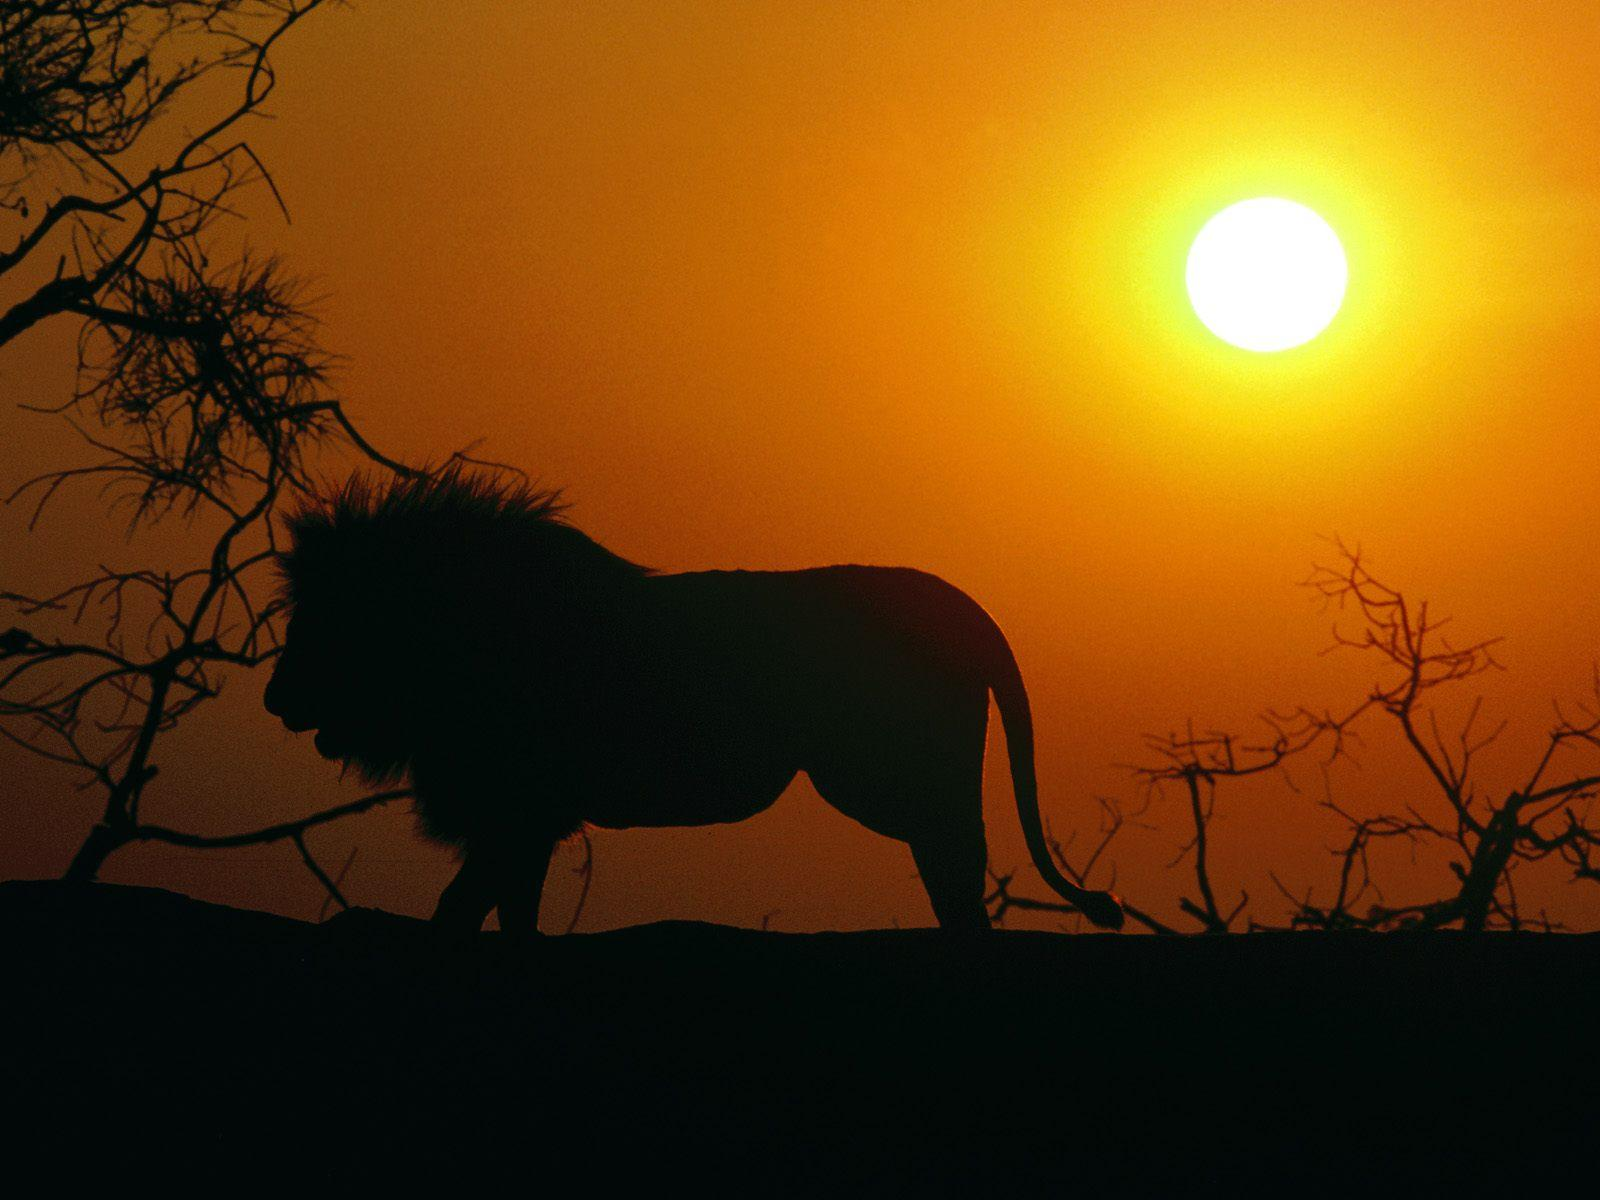 Hd Pics Of Lion National Geographic Wild Hd Lions Attack Youtube